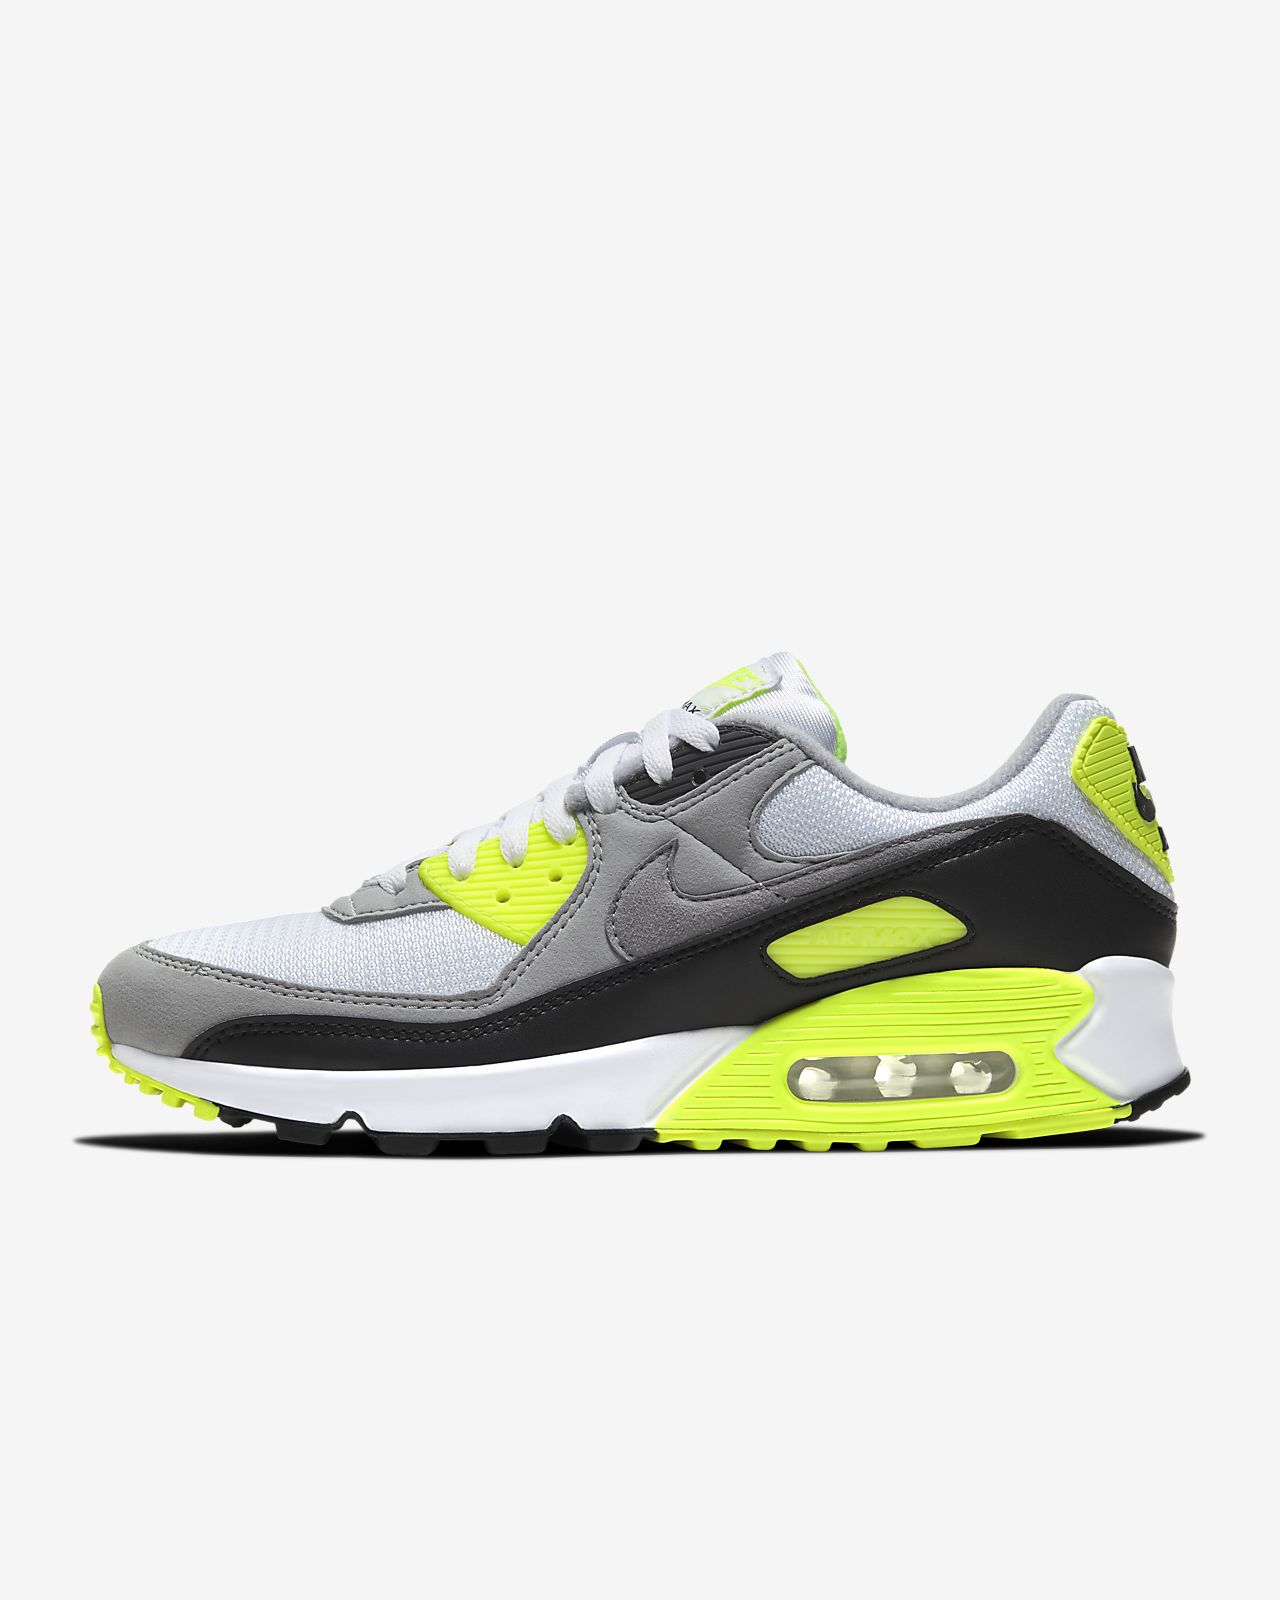 17 Best air max90 images | Nike men, Air max 90, Nike running